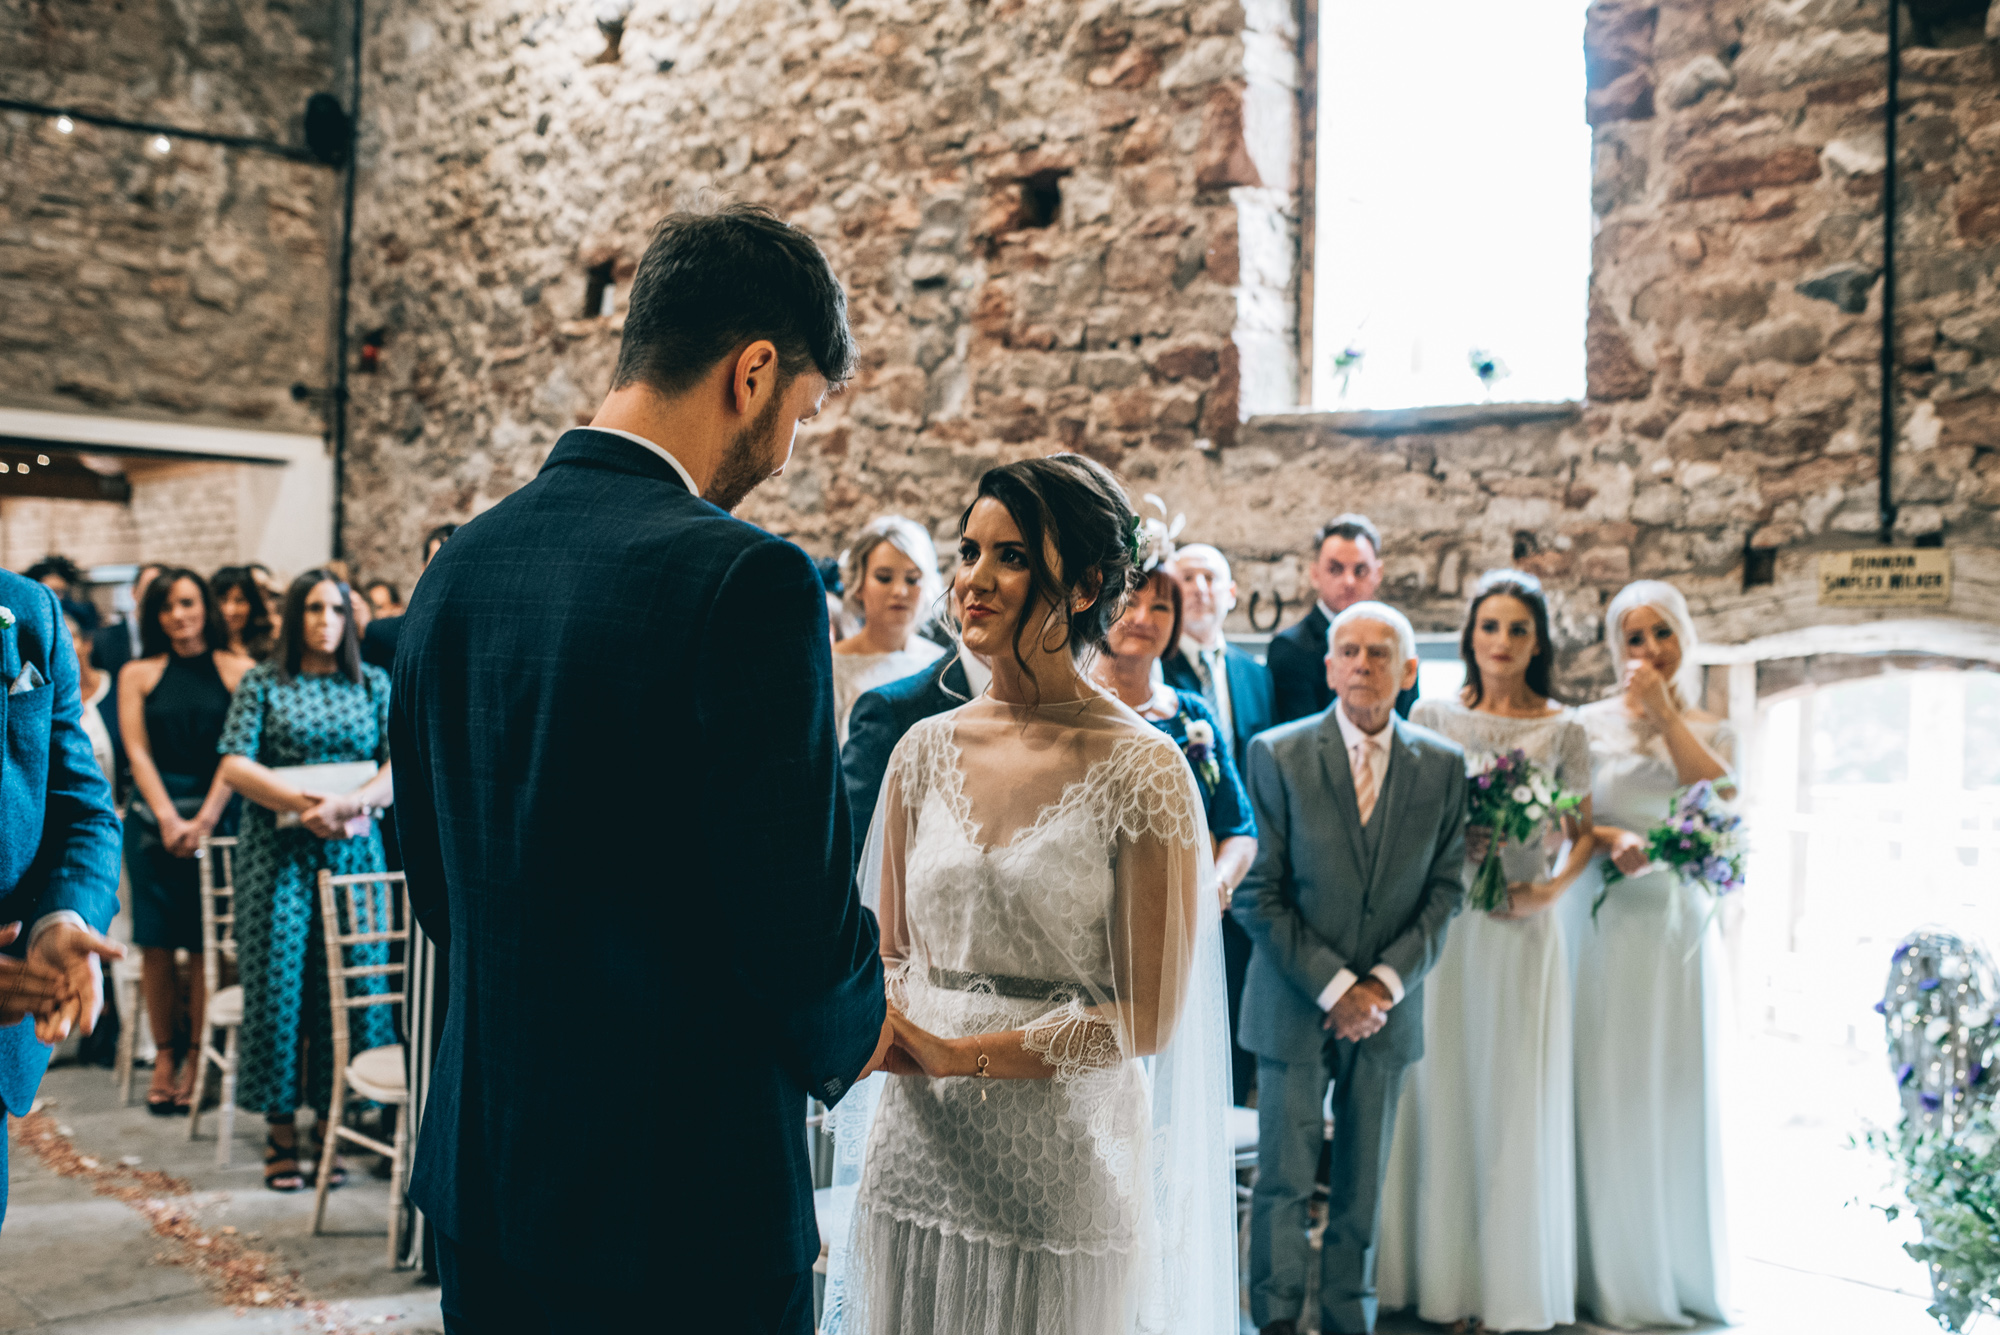 Kate-Beaumont-Sheffield-Lucy-Bohemian-Lace-Dress-Barn-Wedding-Cumbria-11.jpg